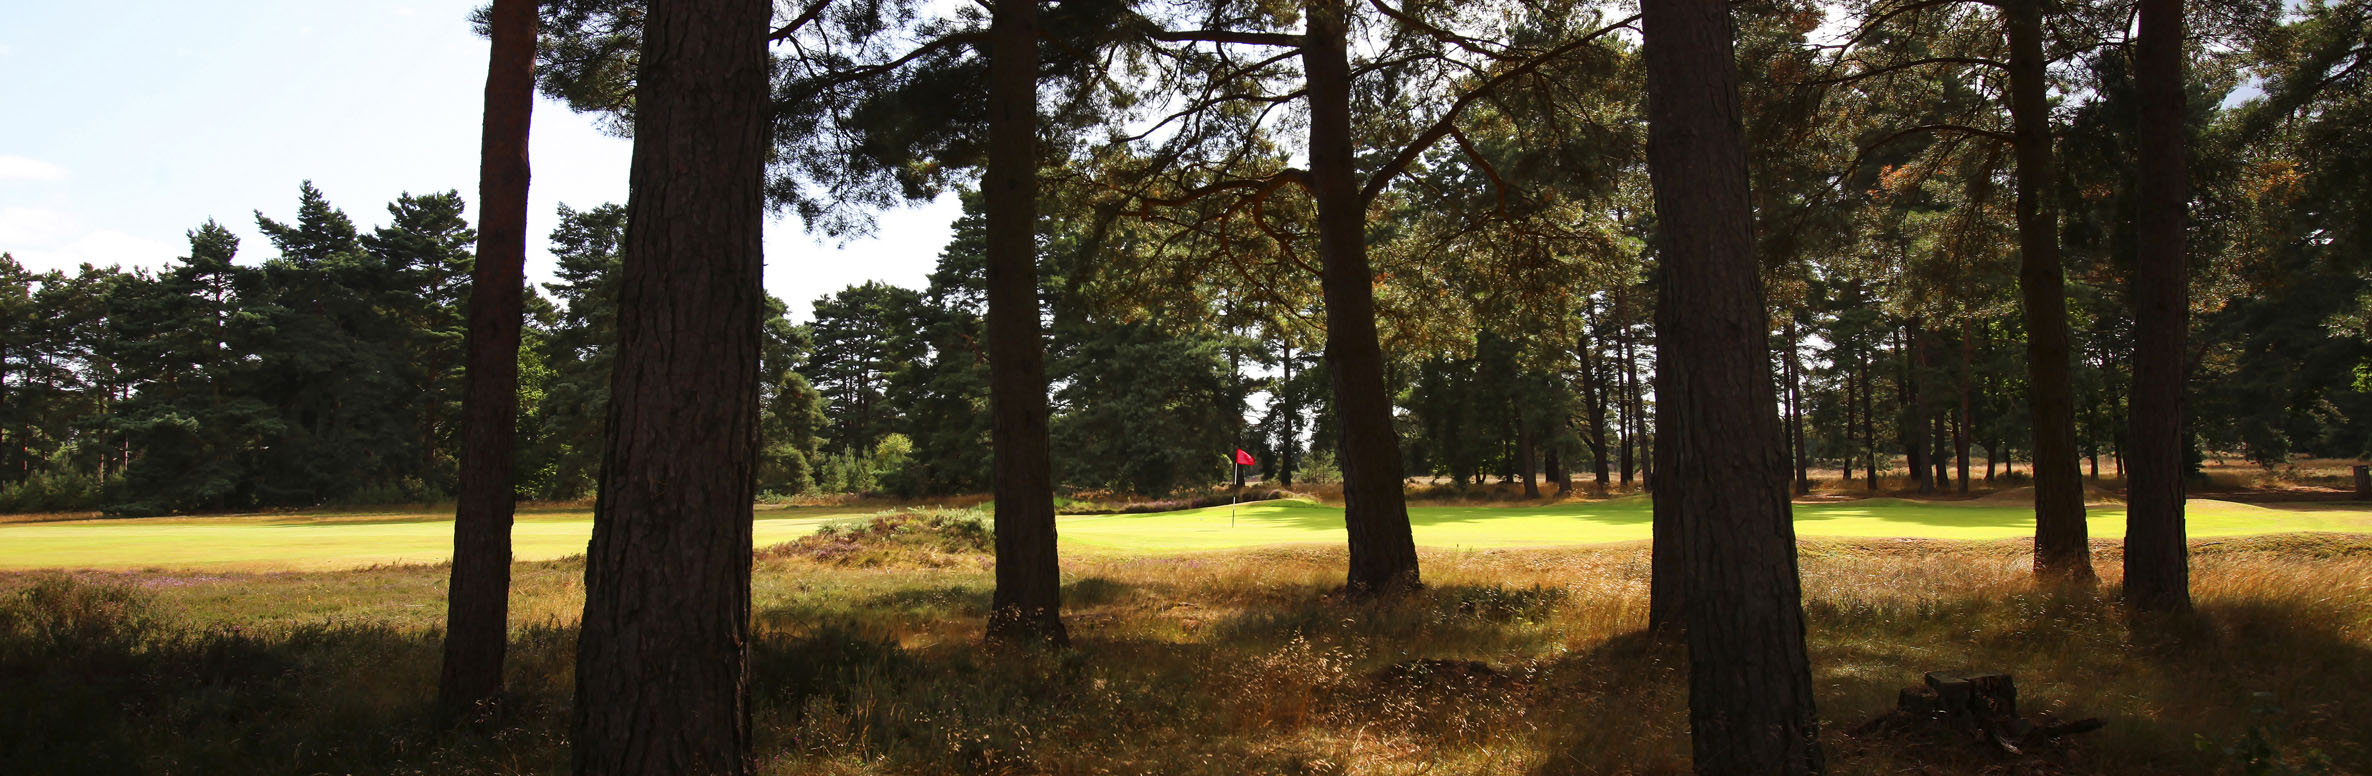 Golf Course Image - Hankley Common Golf Club No. 8